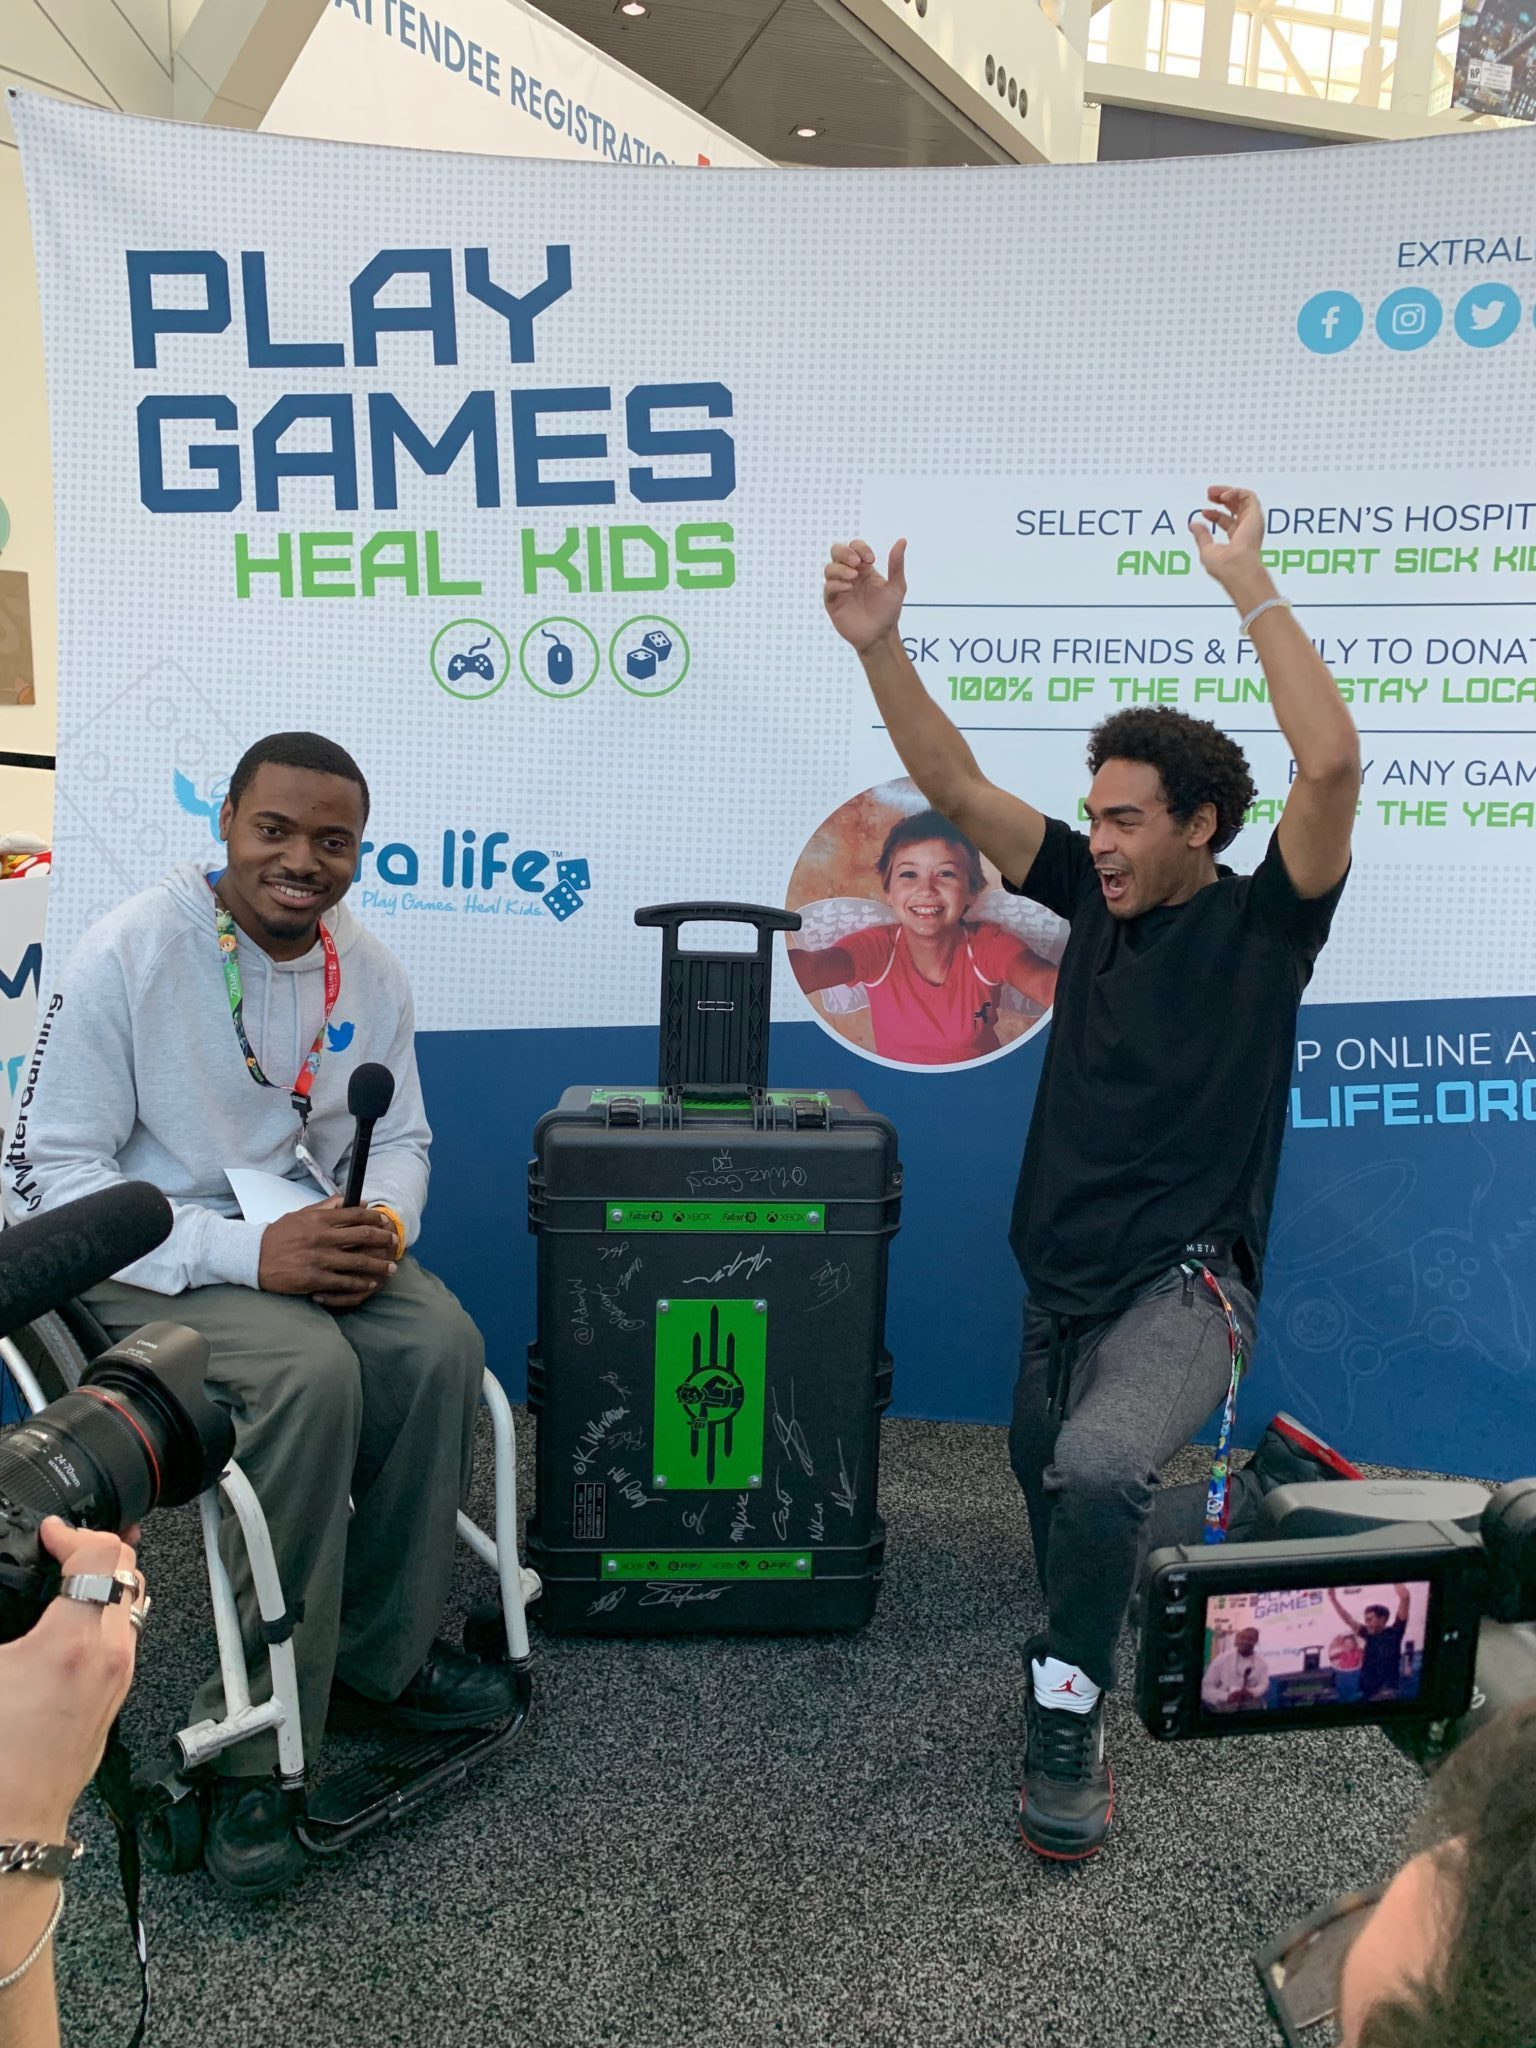 E3 Attendee Wins a One-Of-A-Kind Xbox in the Extra Life Human Claw